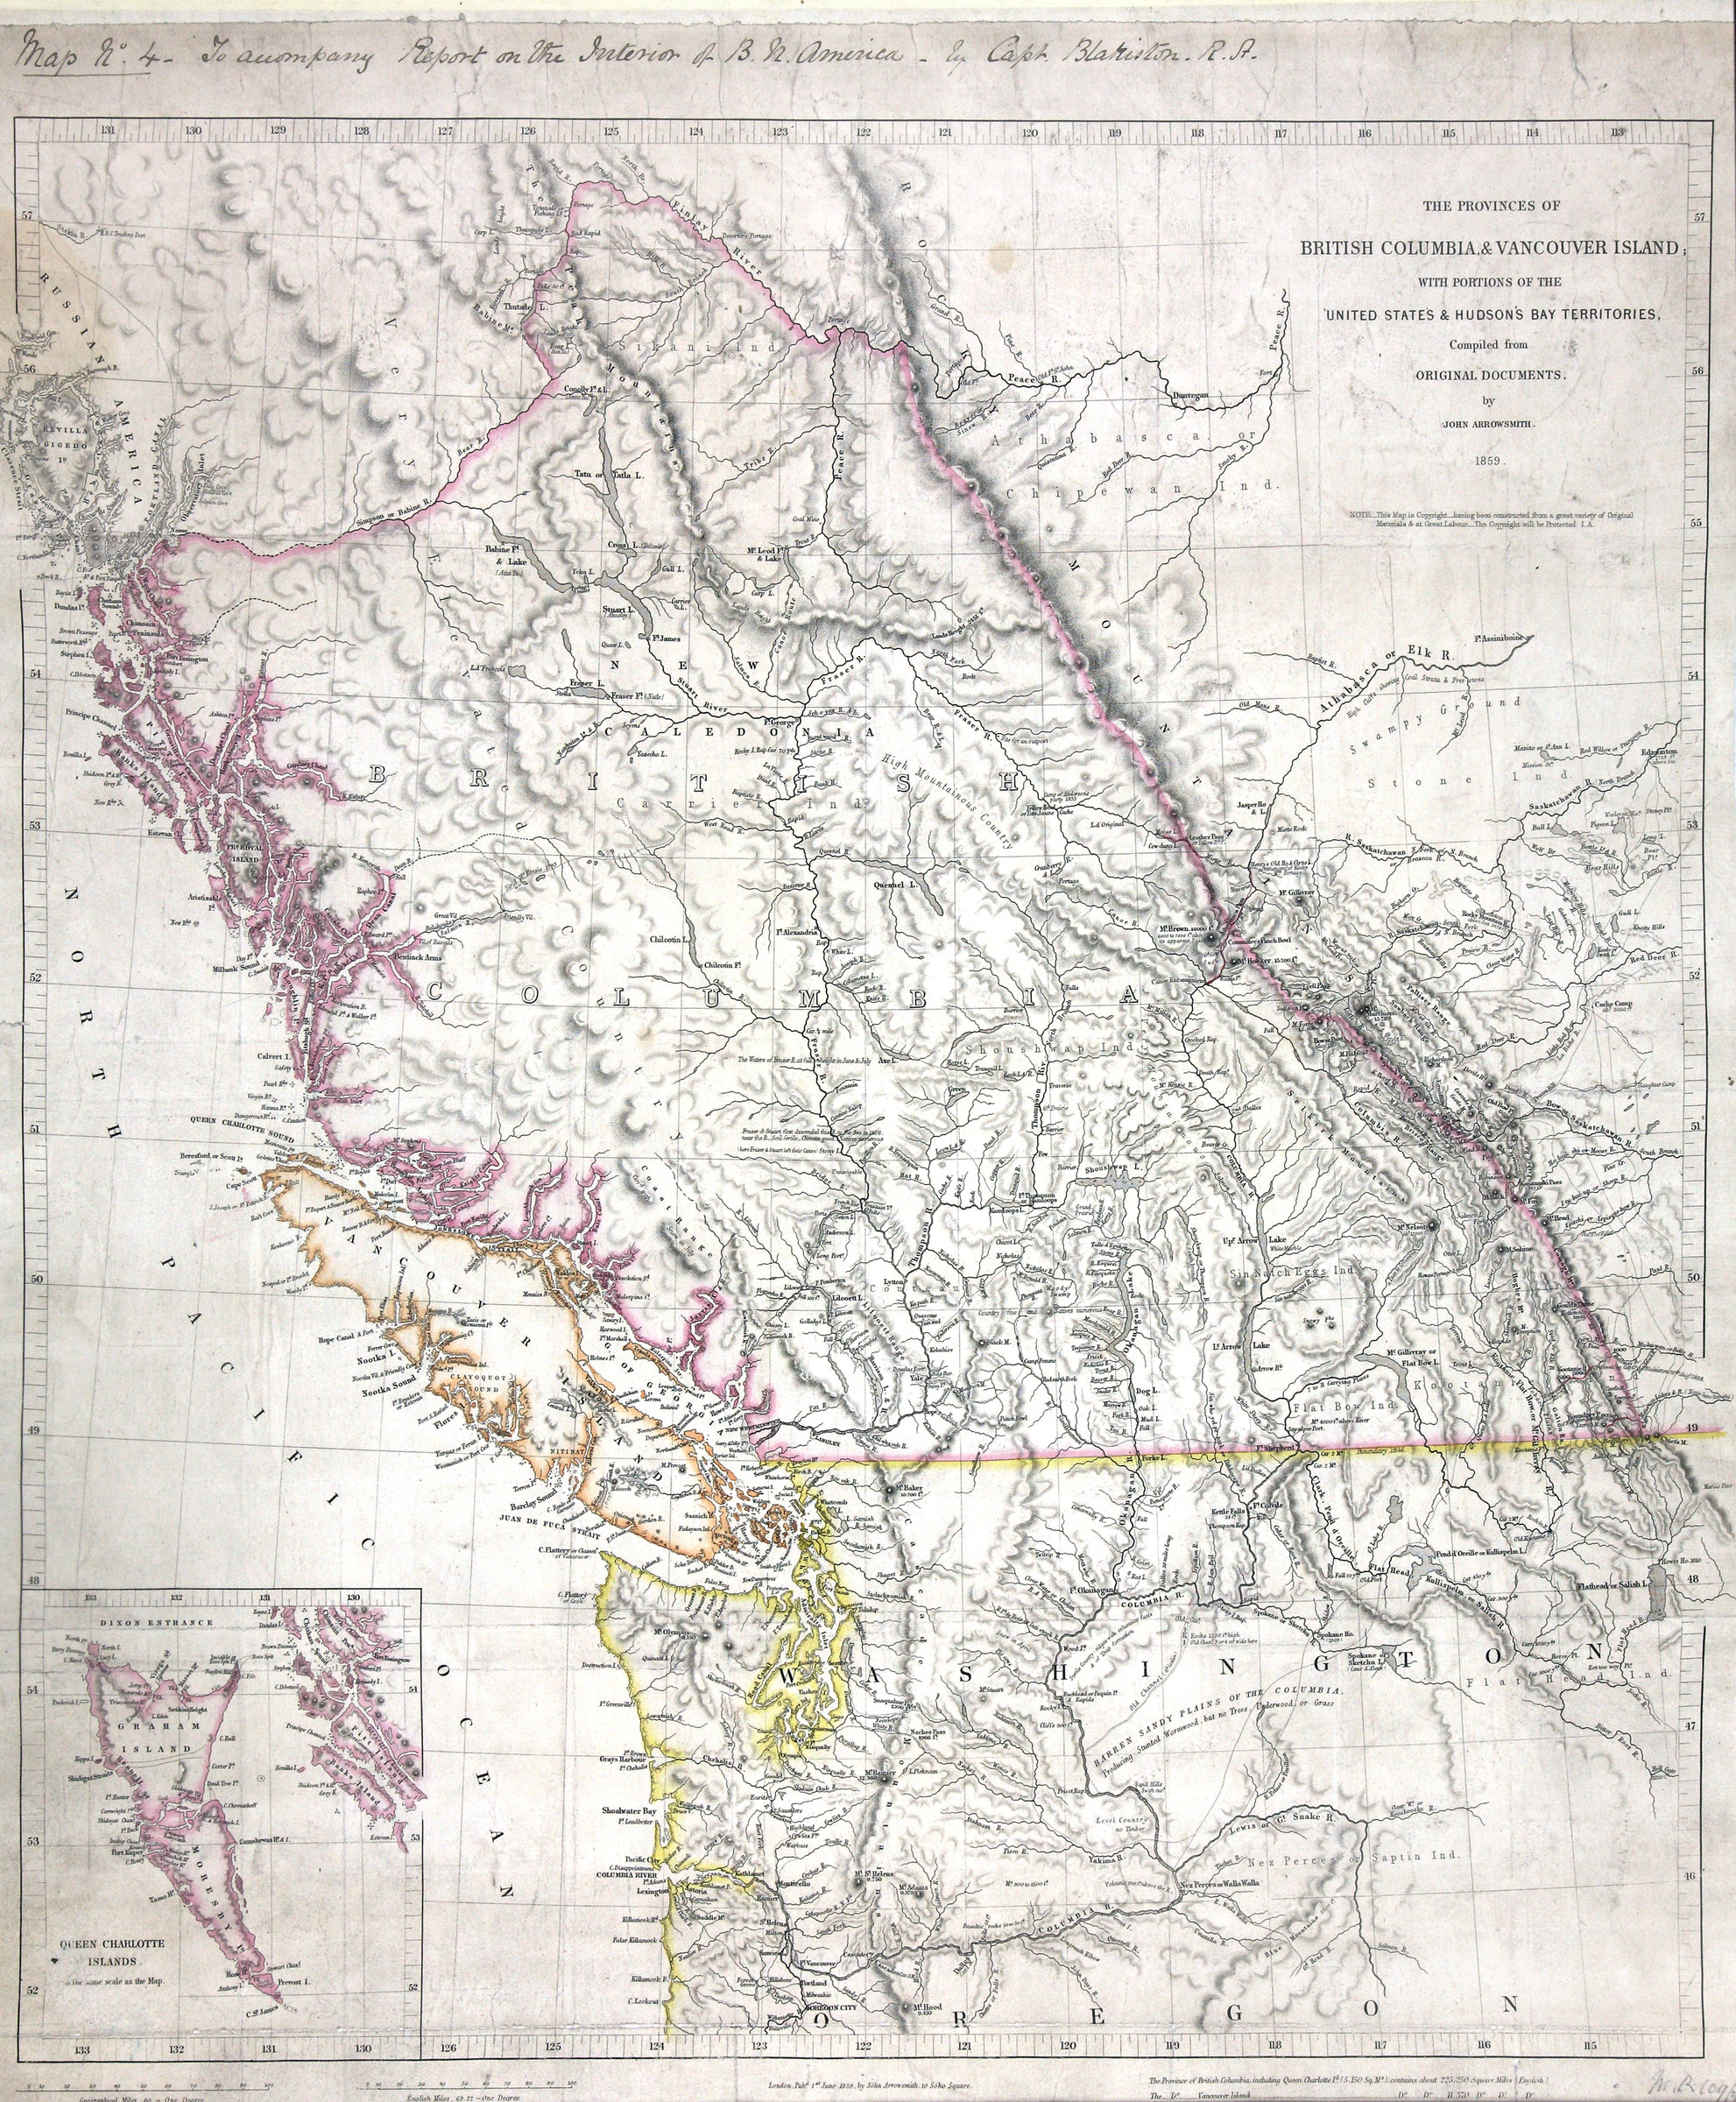 of British Columbia and Vancouver Island with portions of the